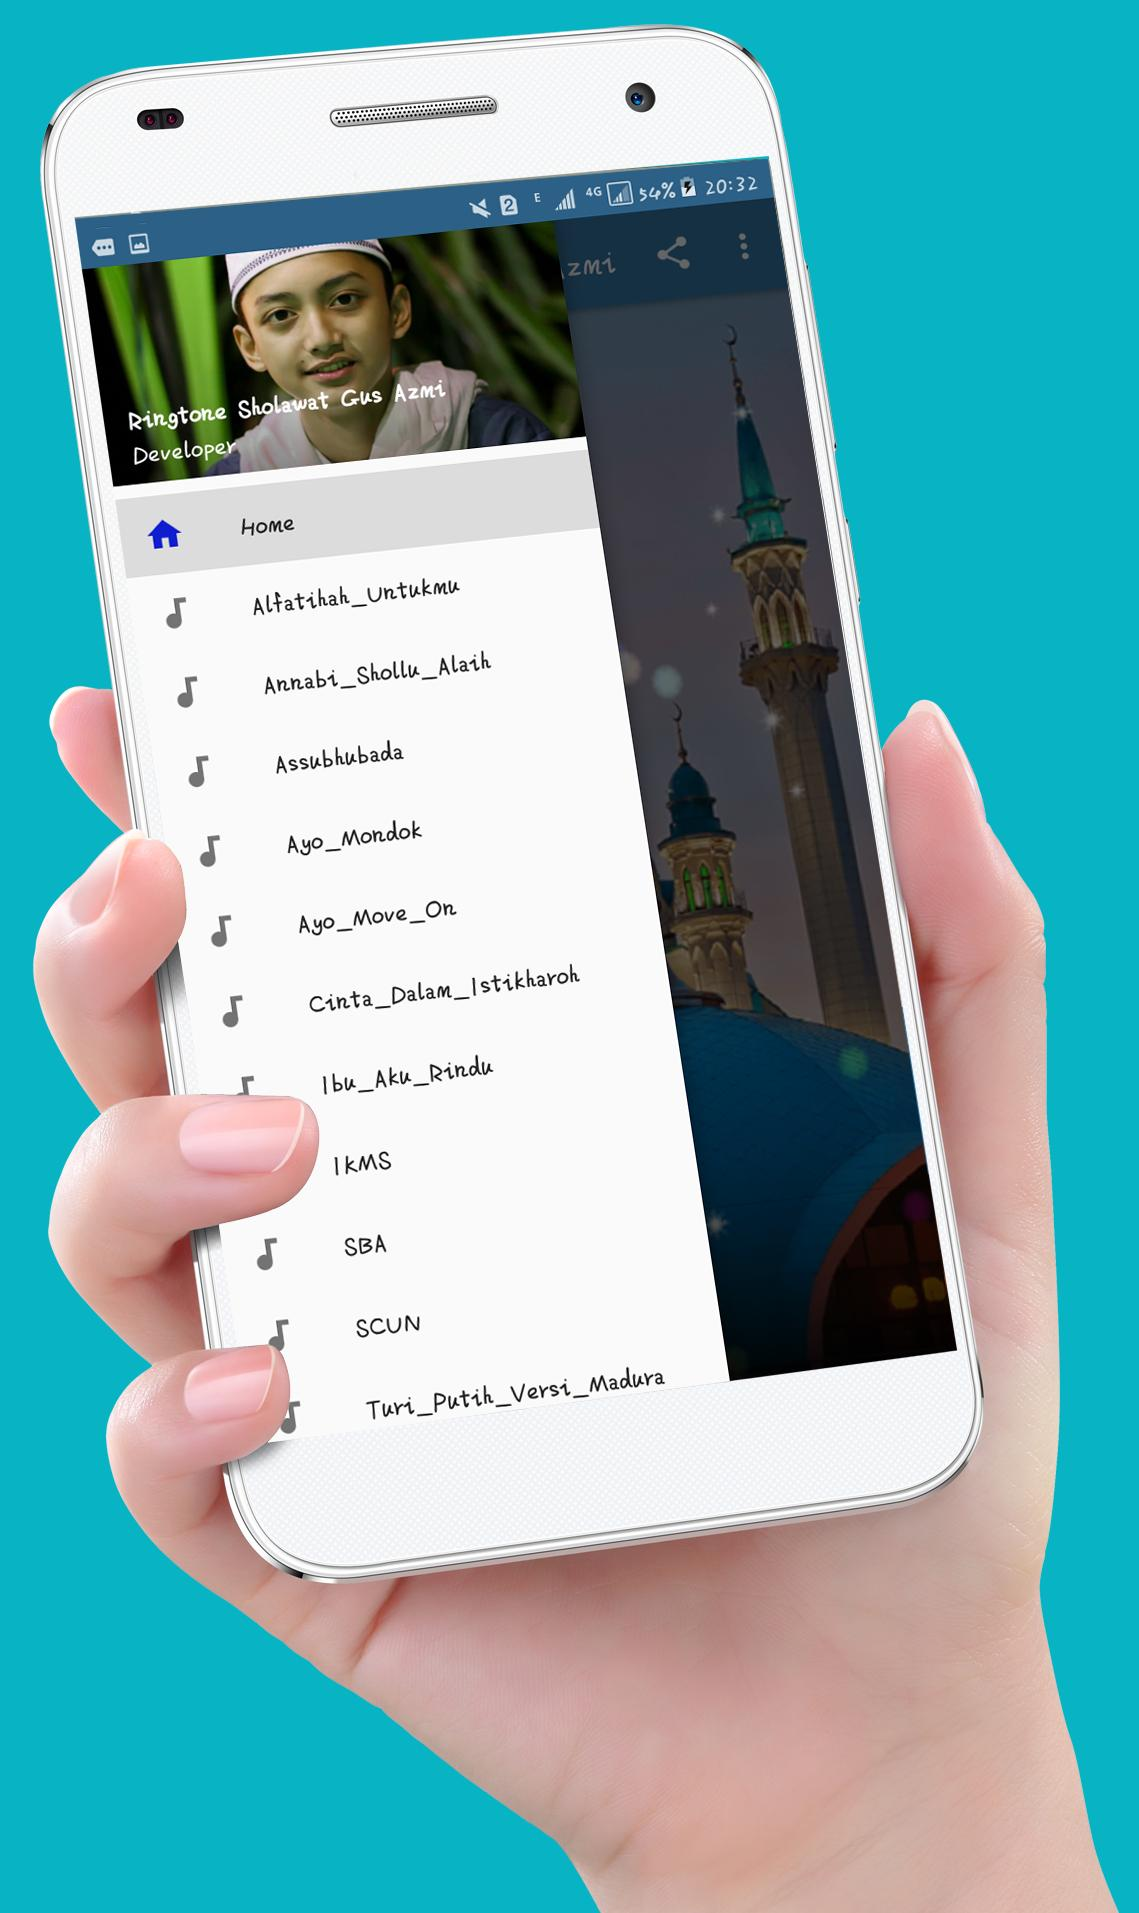 Ringtone Sholawat Gus Azmi for Android - APK Download